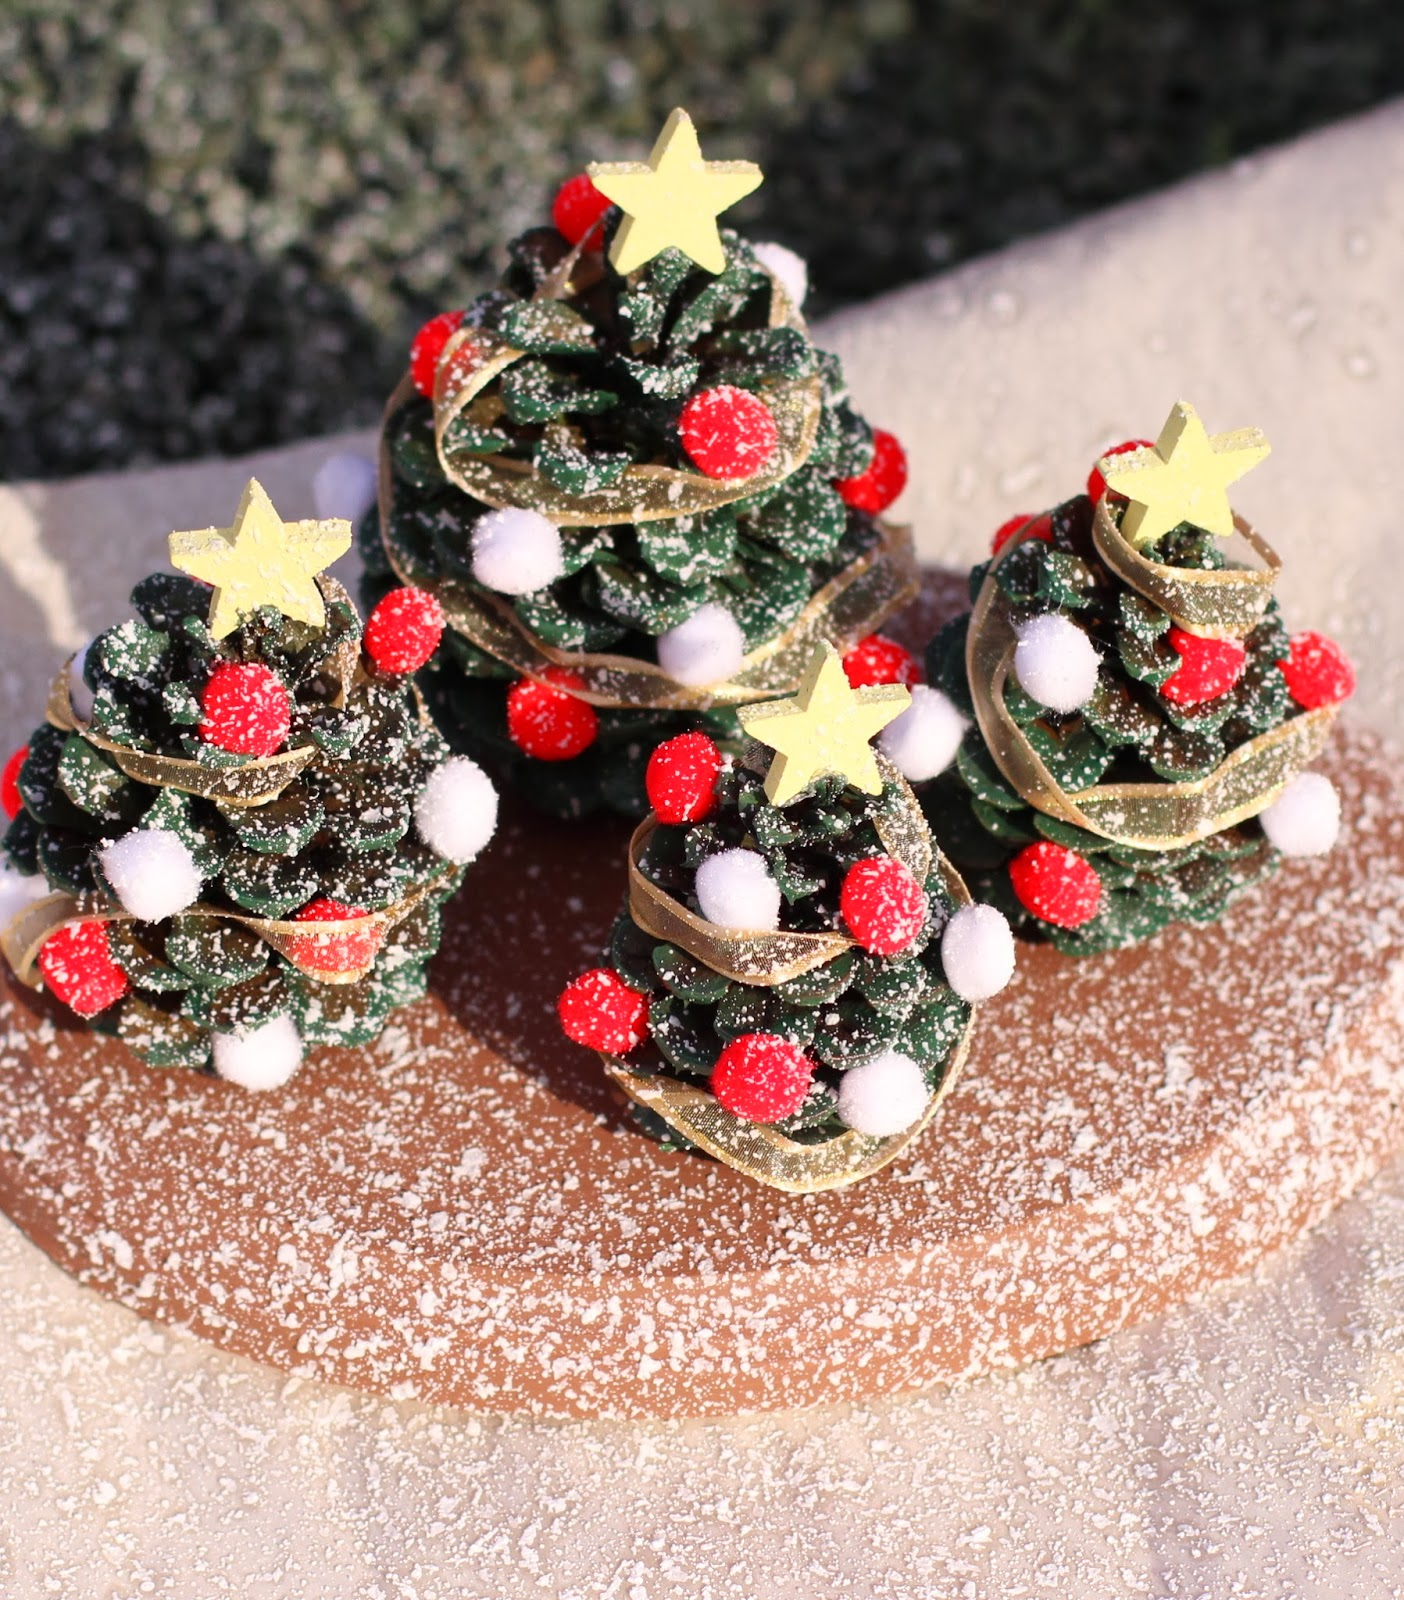 Pine Cone Christmas Decorations Kids Craft Pine Cone Christmas Tree Village Decoration